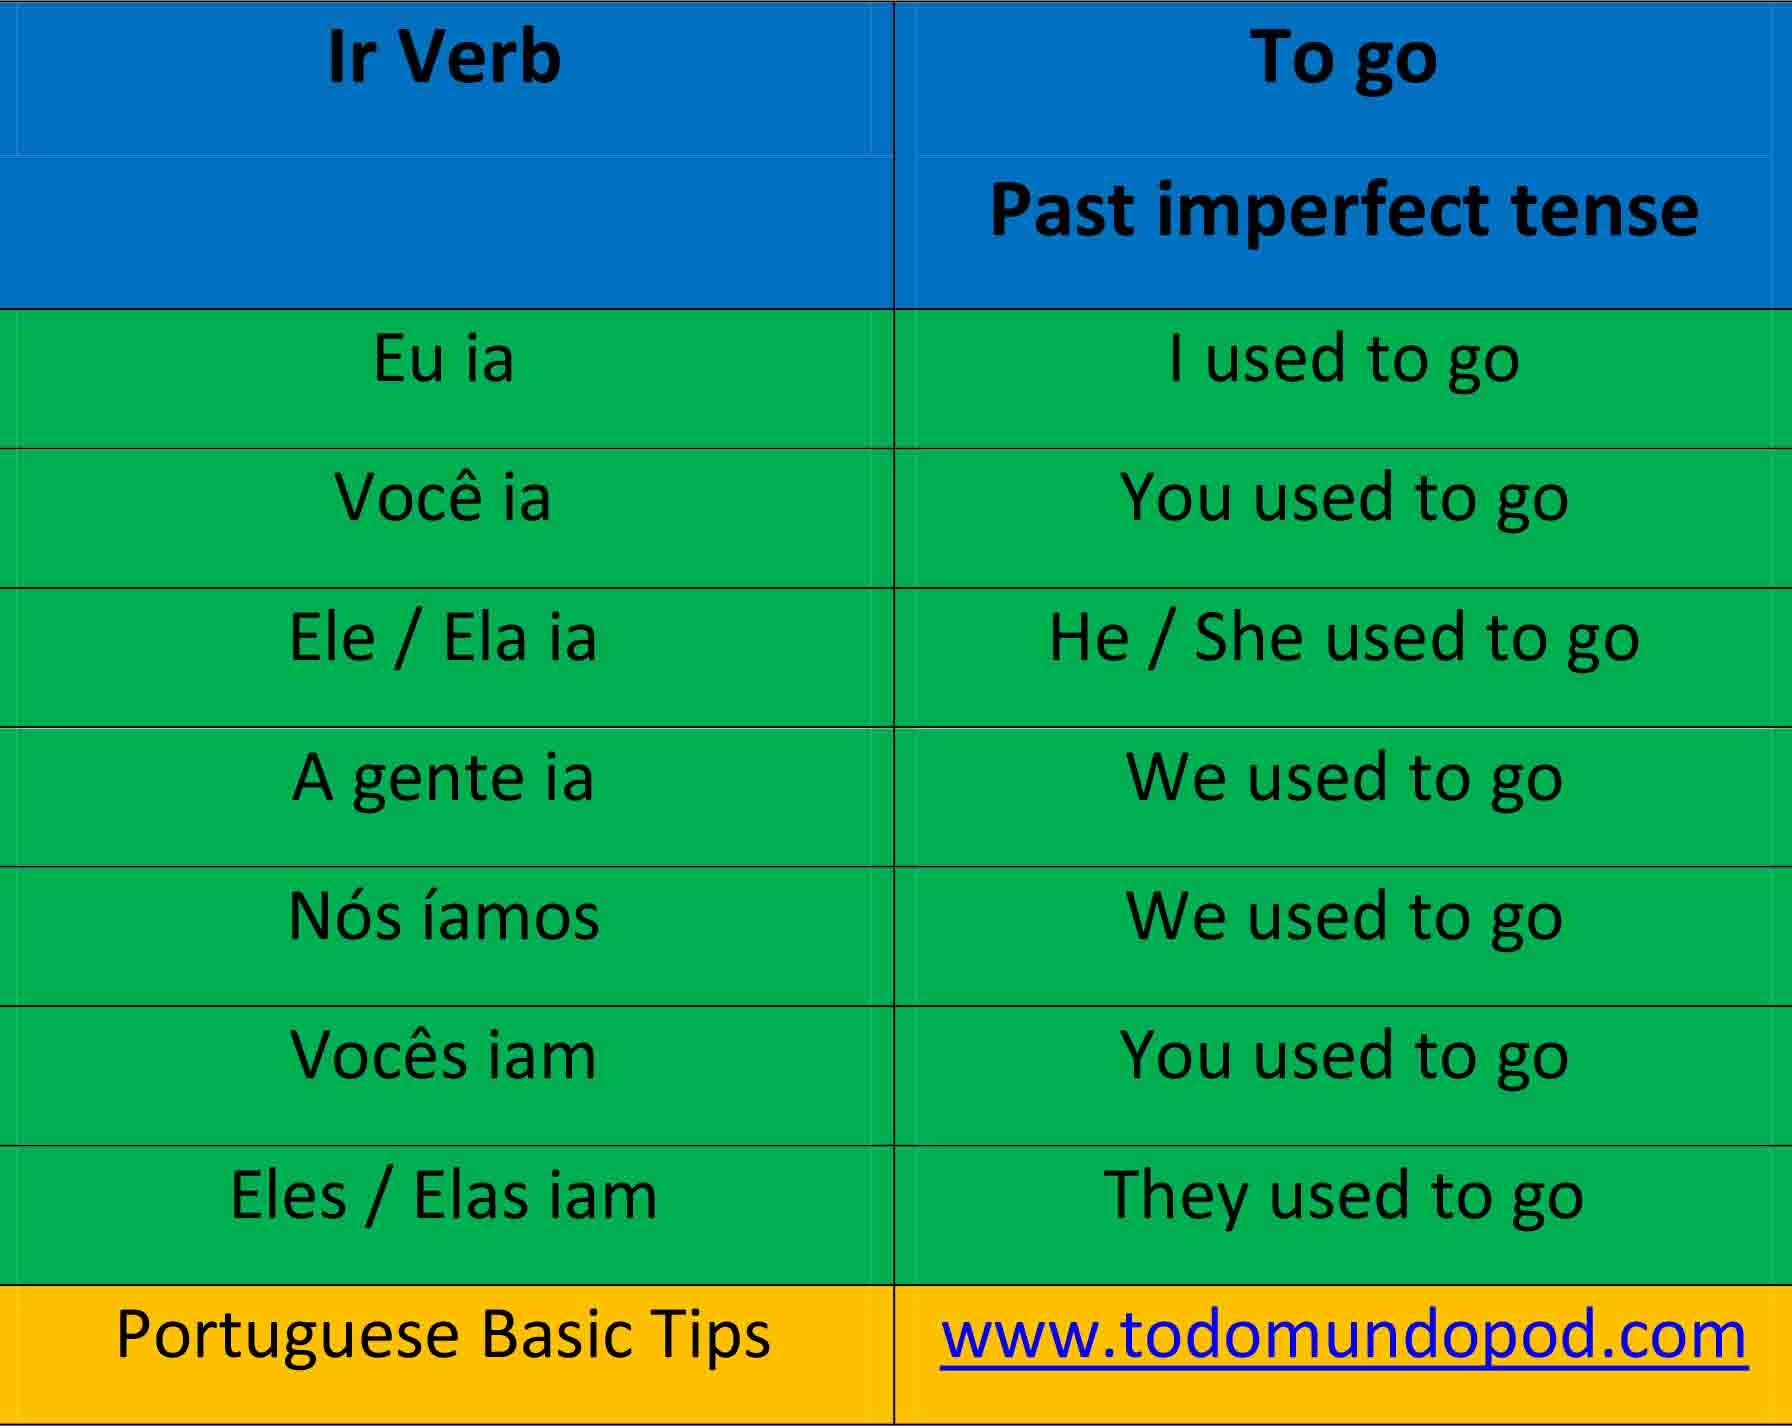 Ir conjugation (to go verb in the past imperfect tense in portuguese)